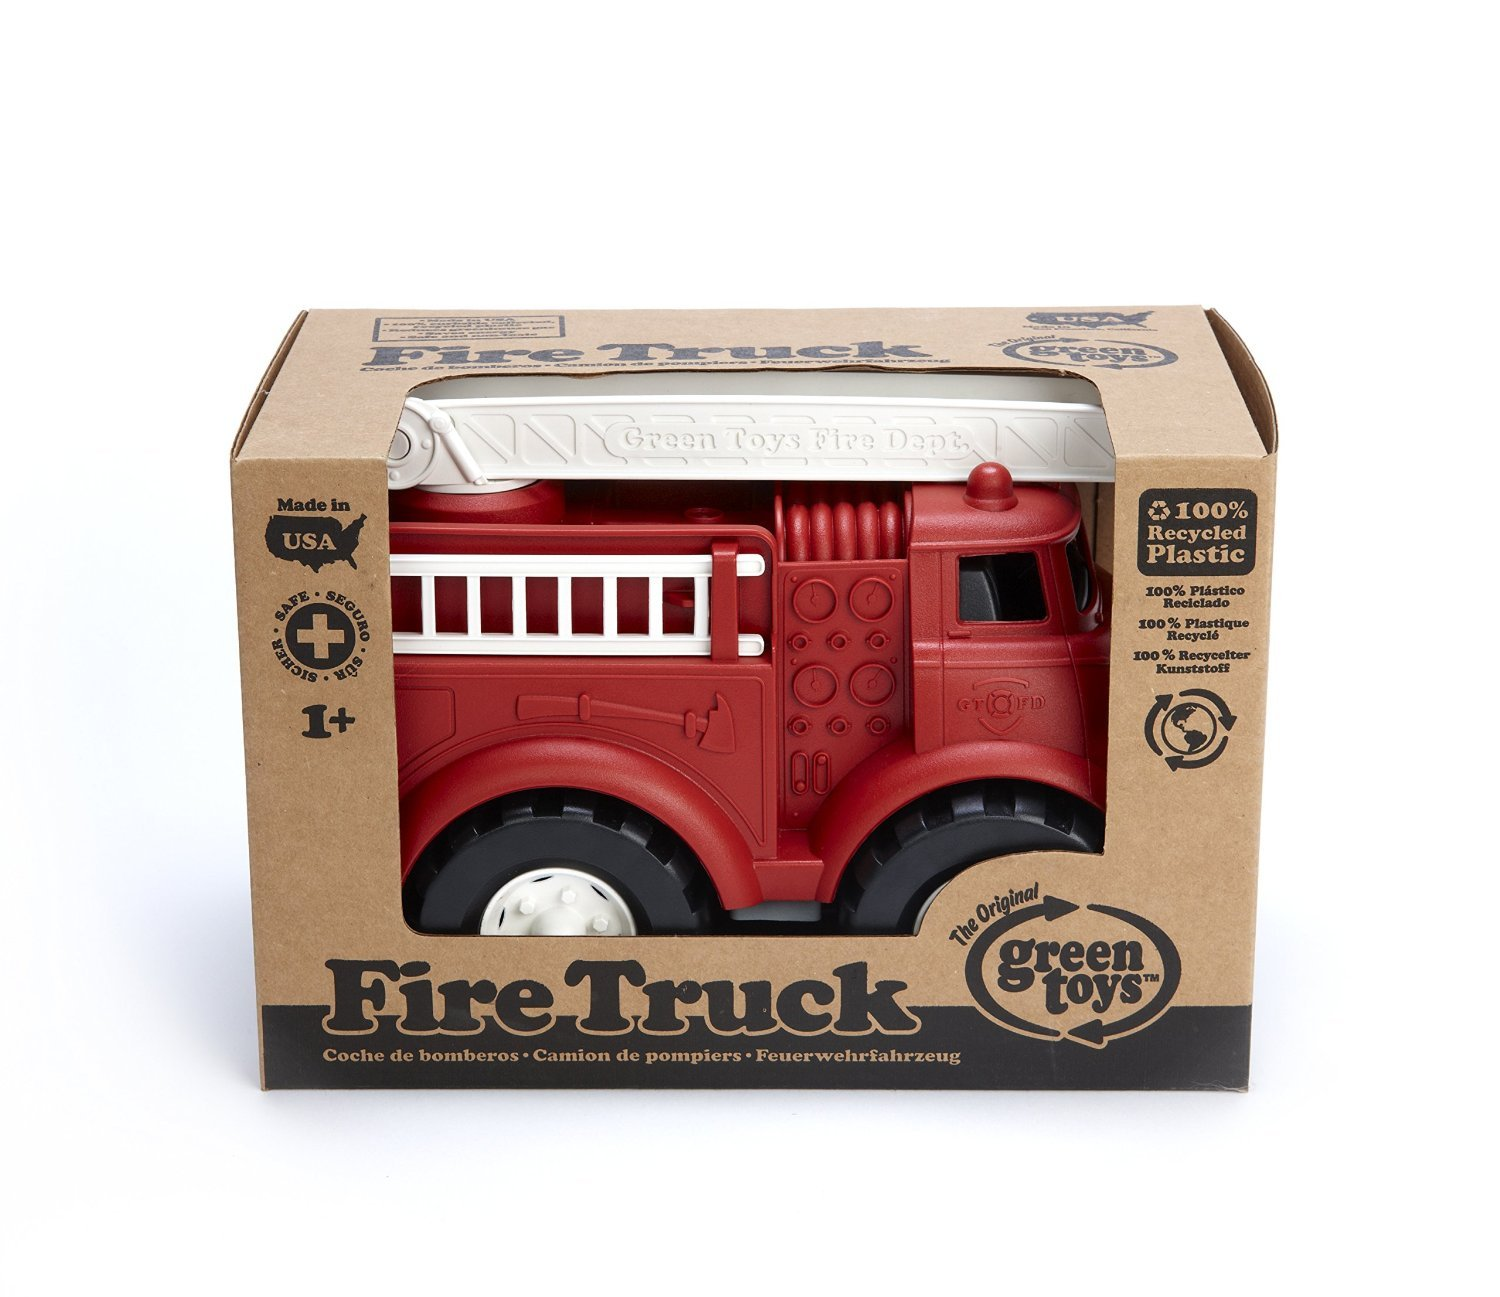 Amazon.com: Green Toys Fire Truck Vehicle Playsets Toy fot Kids, Red: Toys & Games